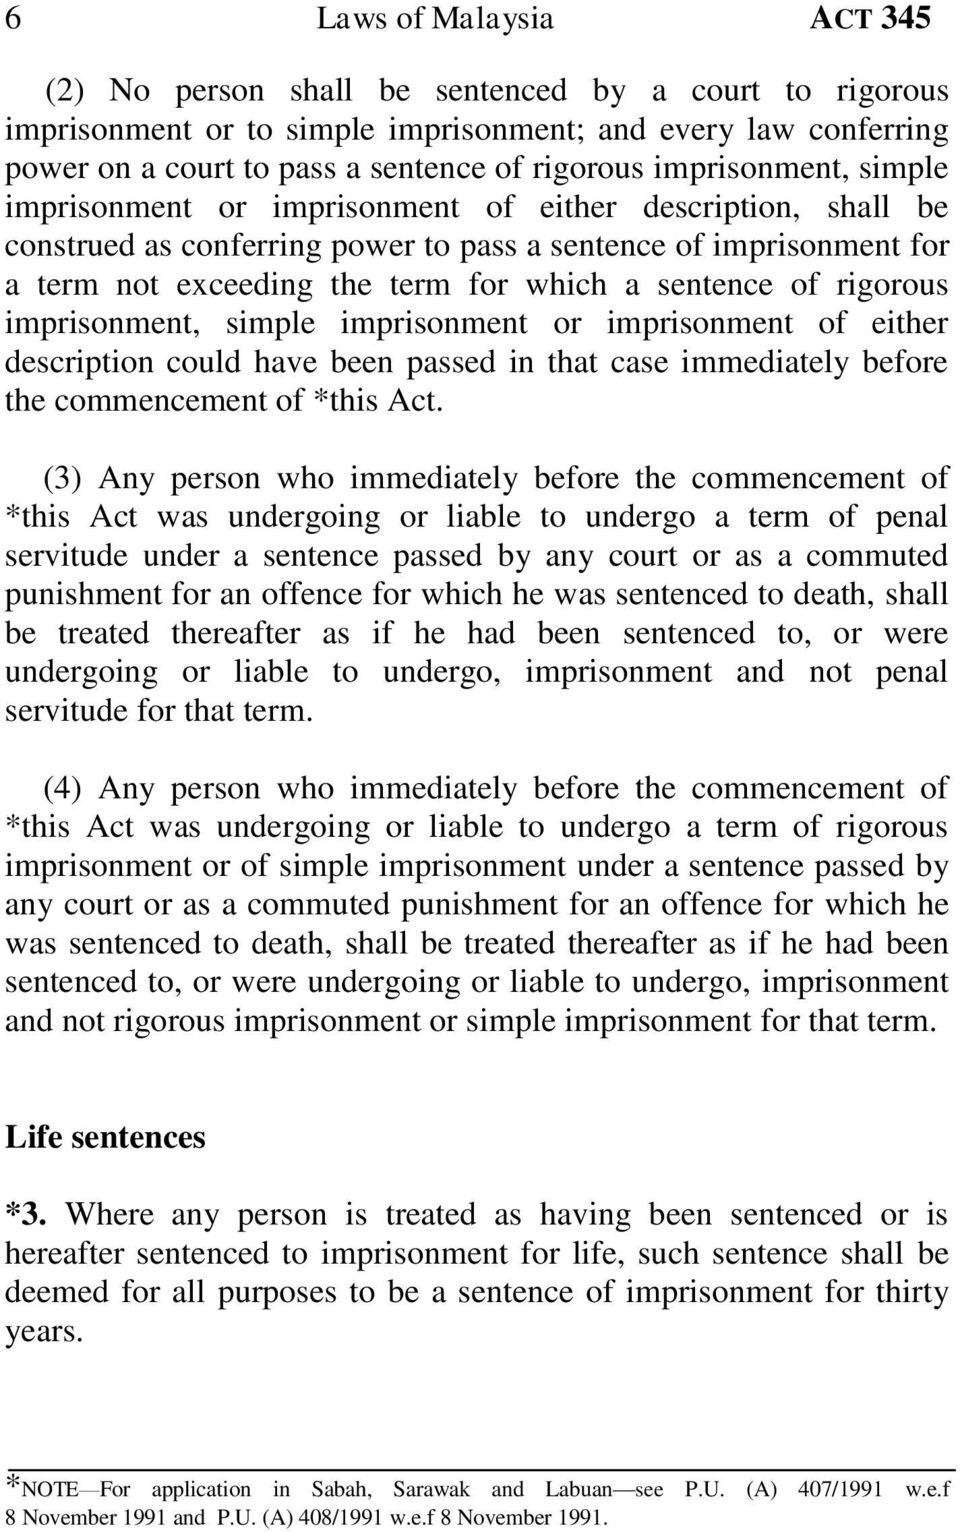 sentence of rigorous imprisonment, simple imprisonment or imprisonment of either description could have been passed in that case immediately before the commencement of *this Act.